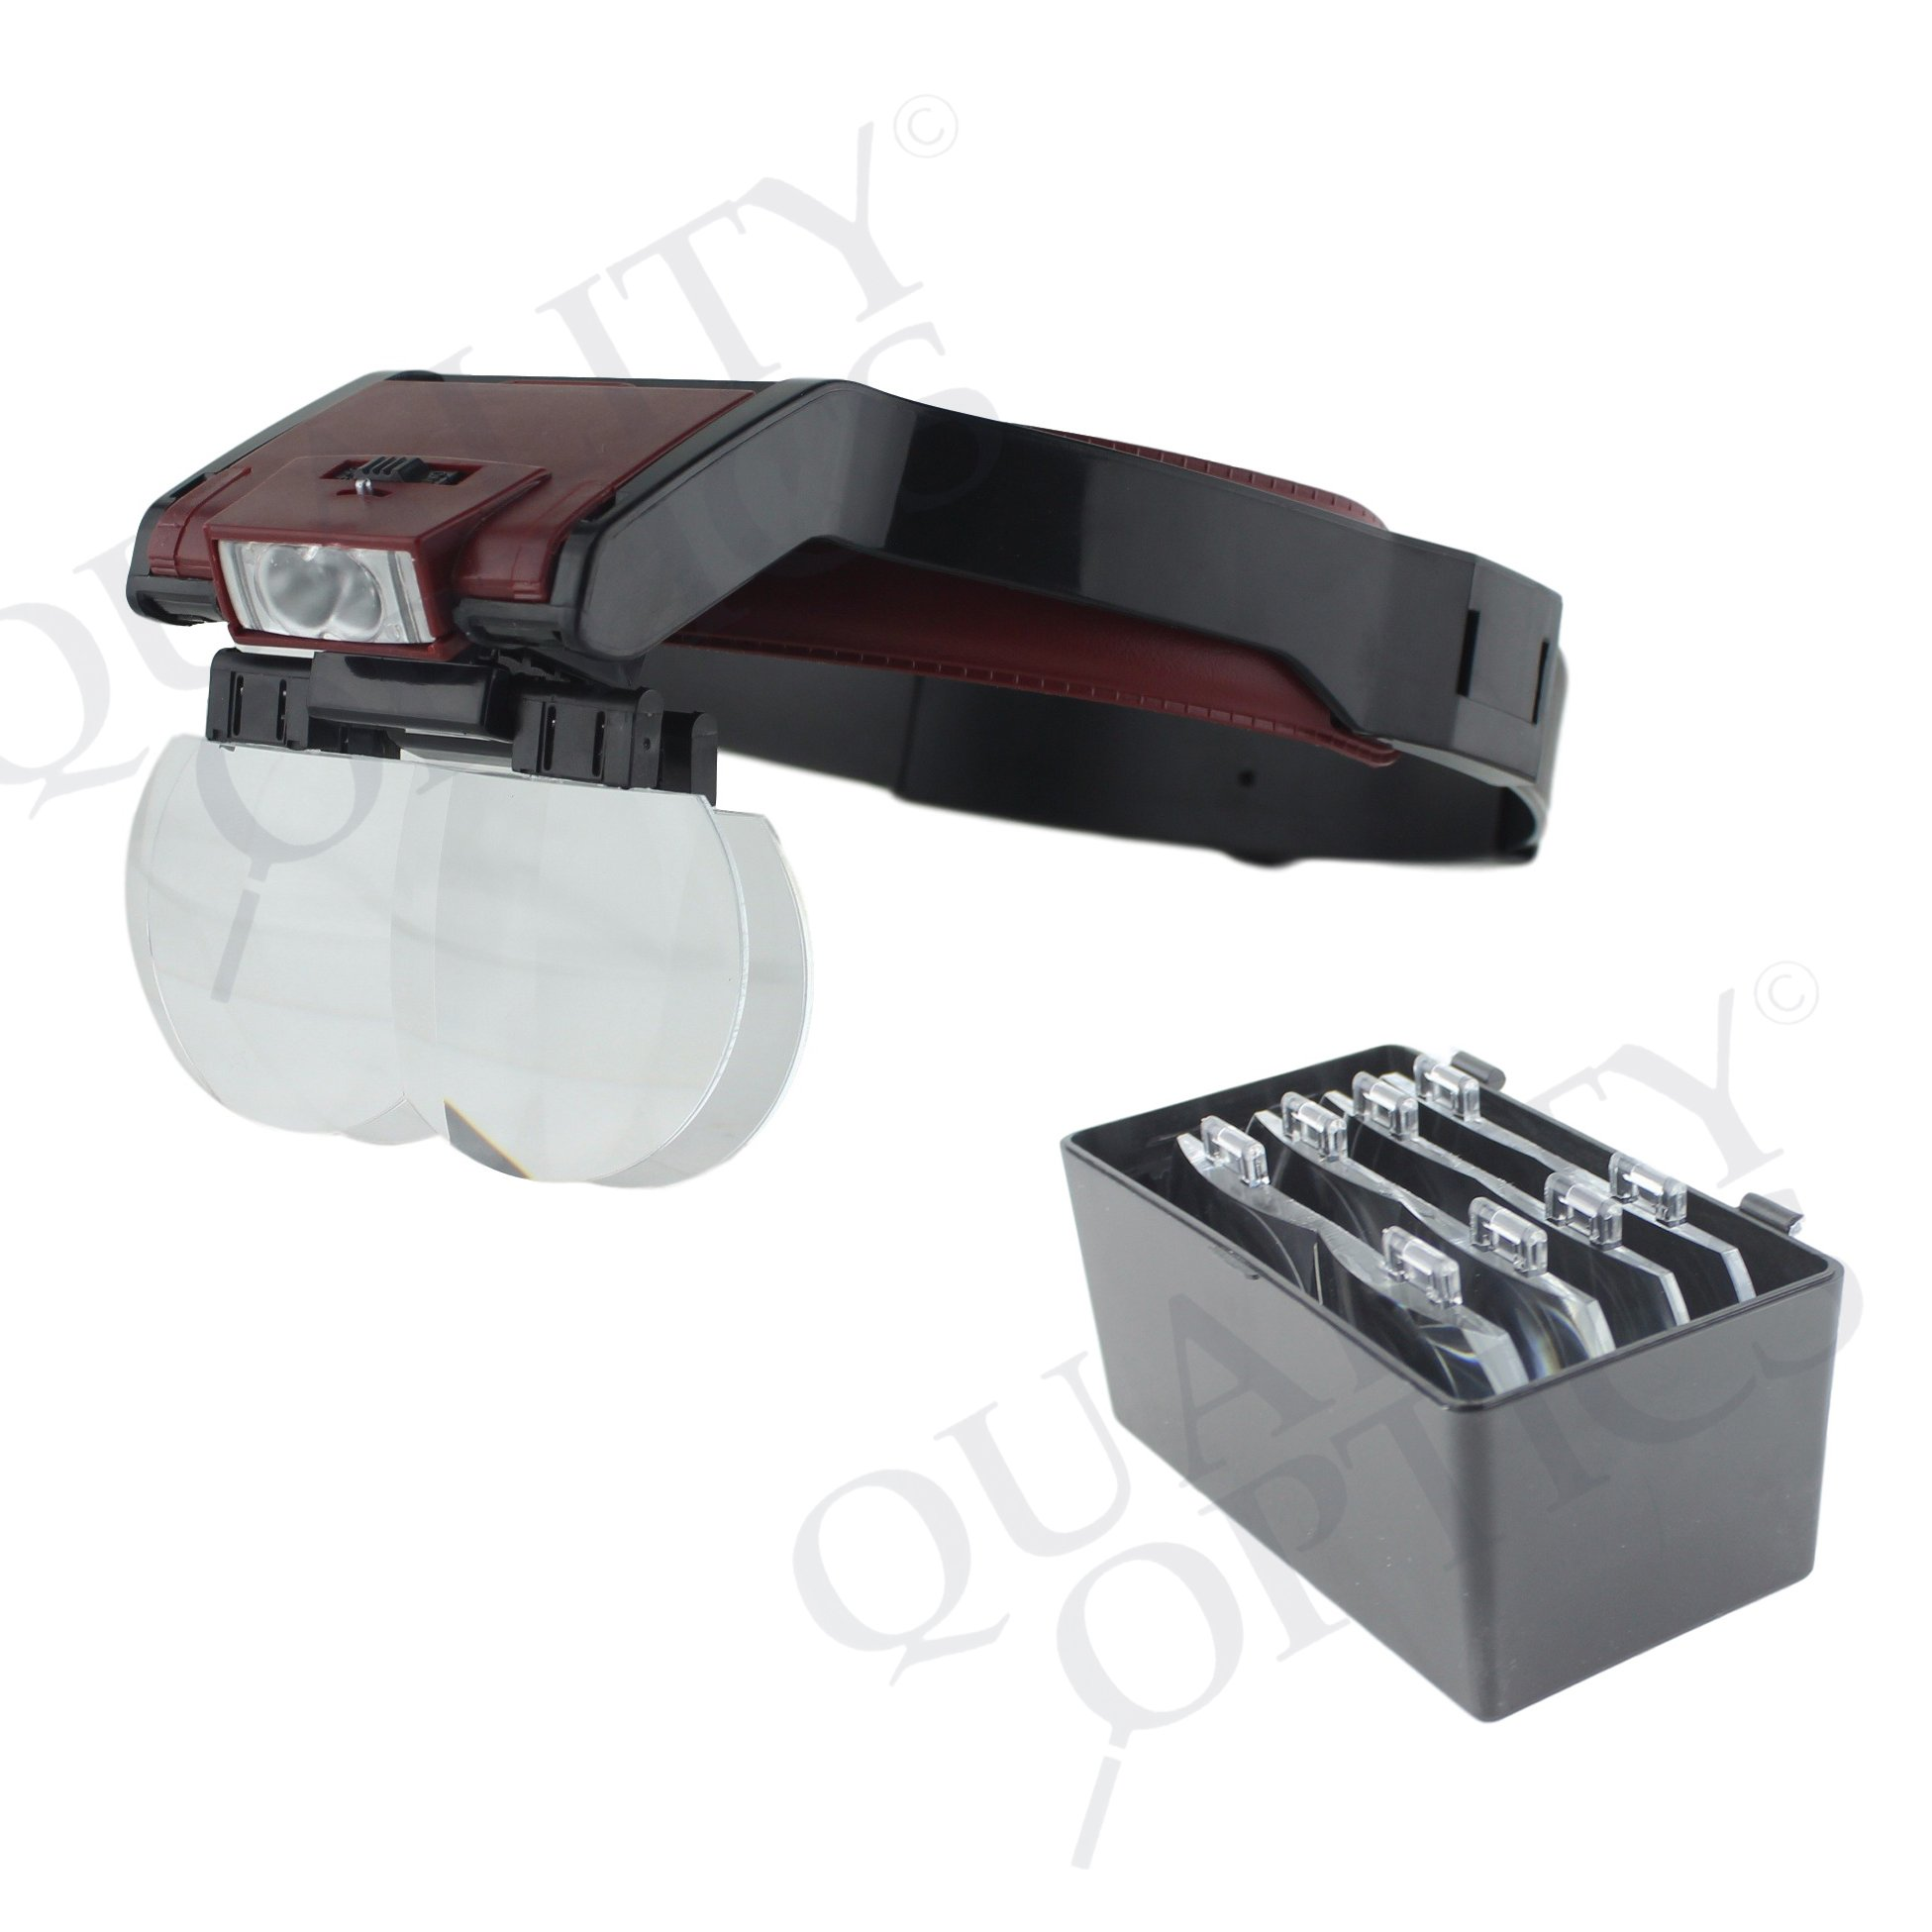 Quality Optics Headlamp Dual Magnifier LED Illuminated Headband For Precision Work, and Reading